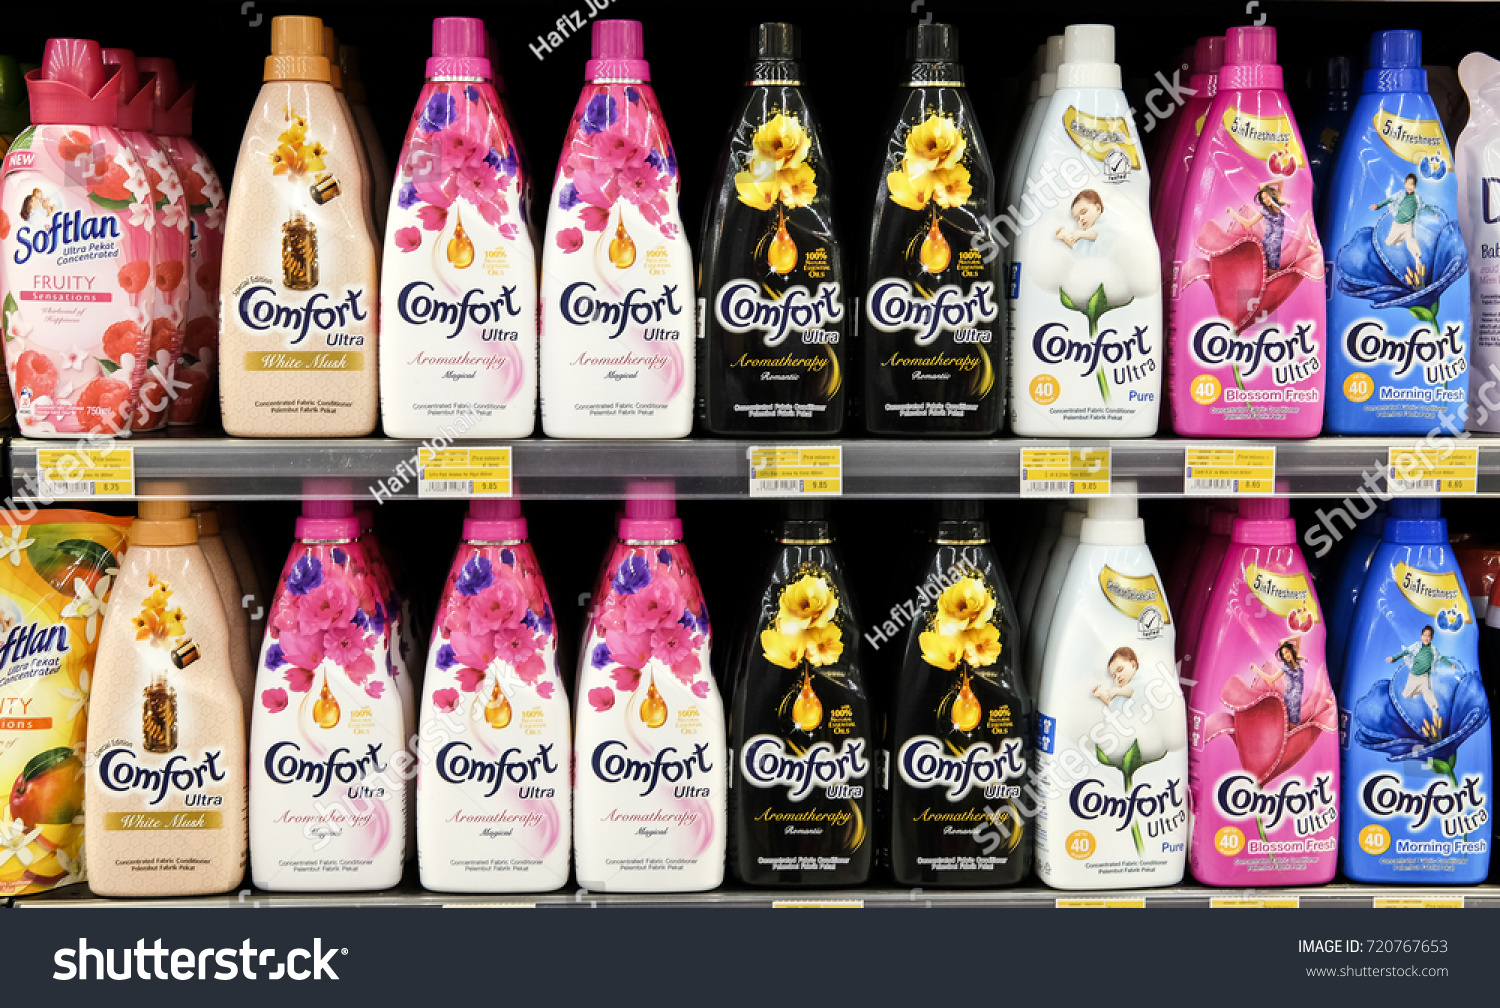 Kuala Lumpur, Malaysia - September 22, 2017 : Comfort fabric conditioner on the shelves at local market. Comfort is a brand under Unilever, a Dutch-British consumer goods company.